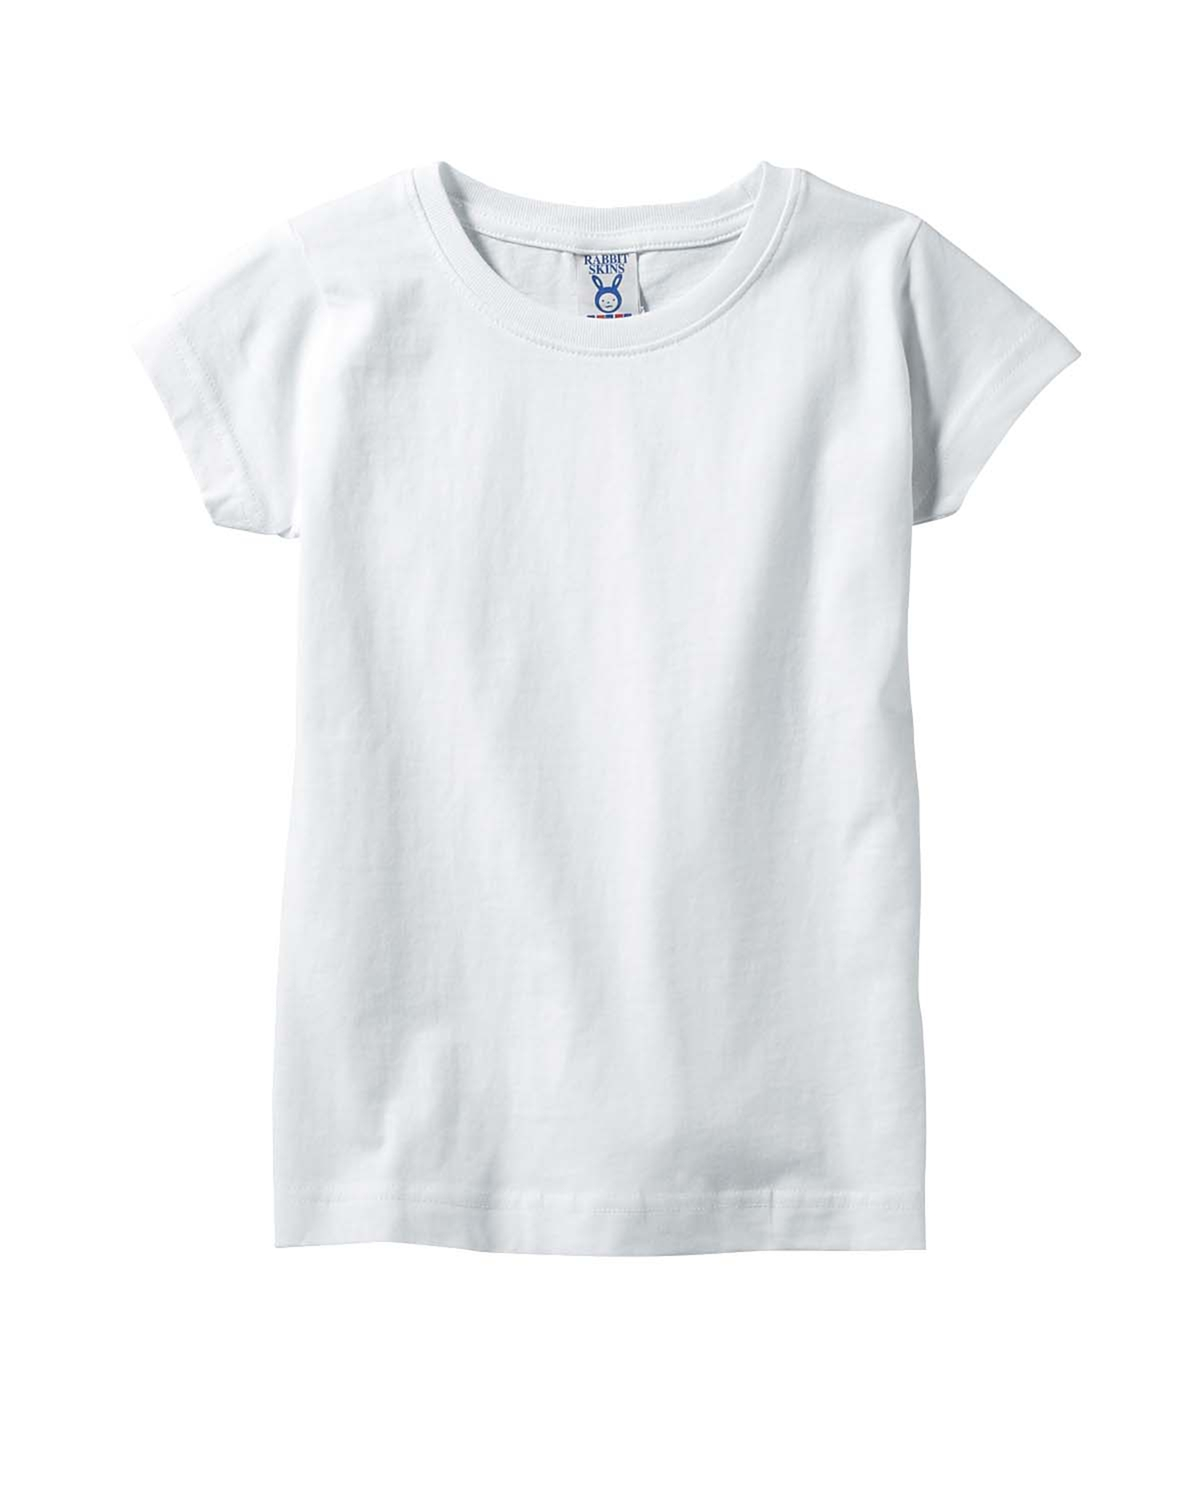 5fcbe6e6 Rabbit Skins 3316 Toddler Girls Longer Length Tee - Shirtmax